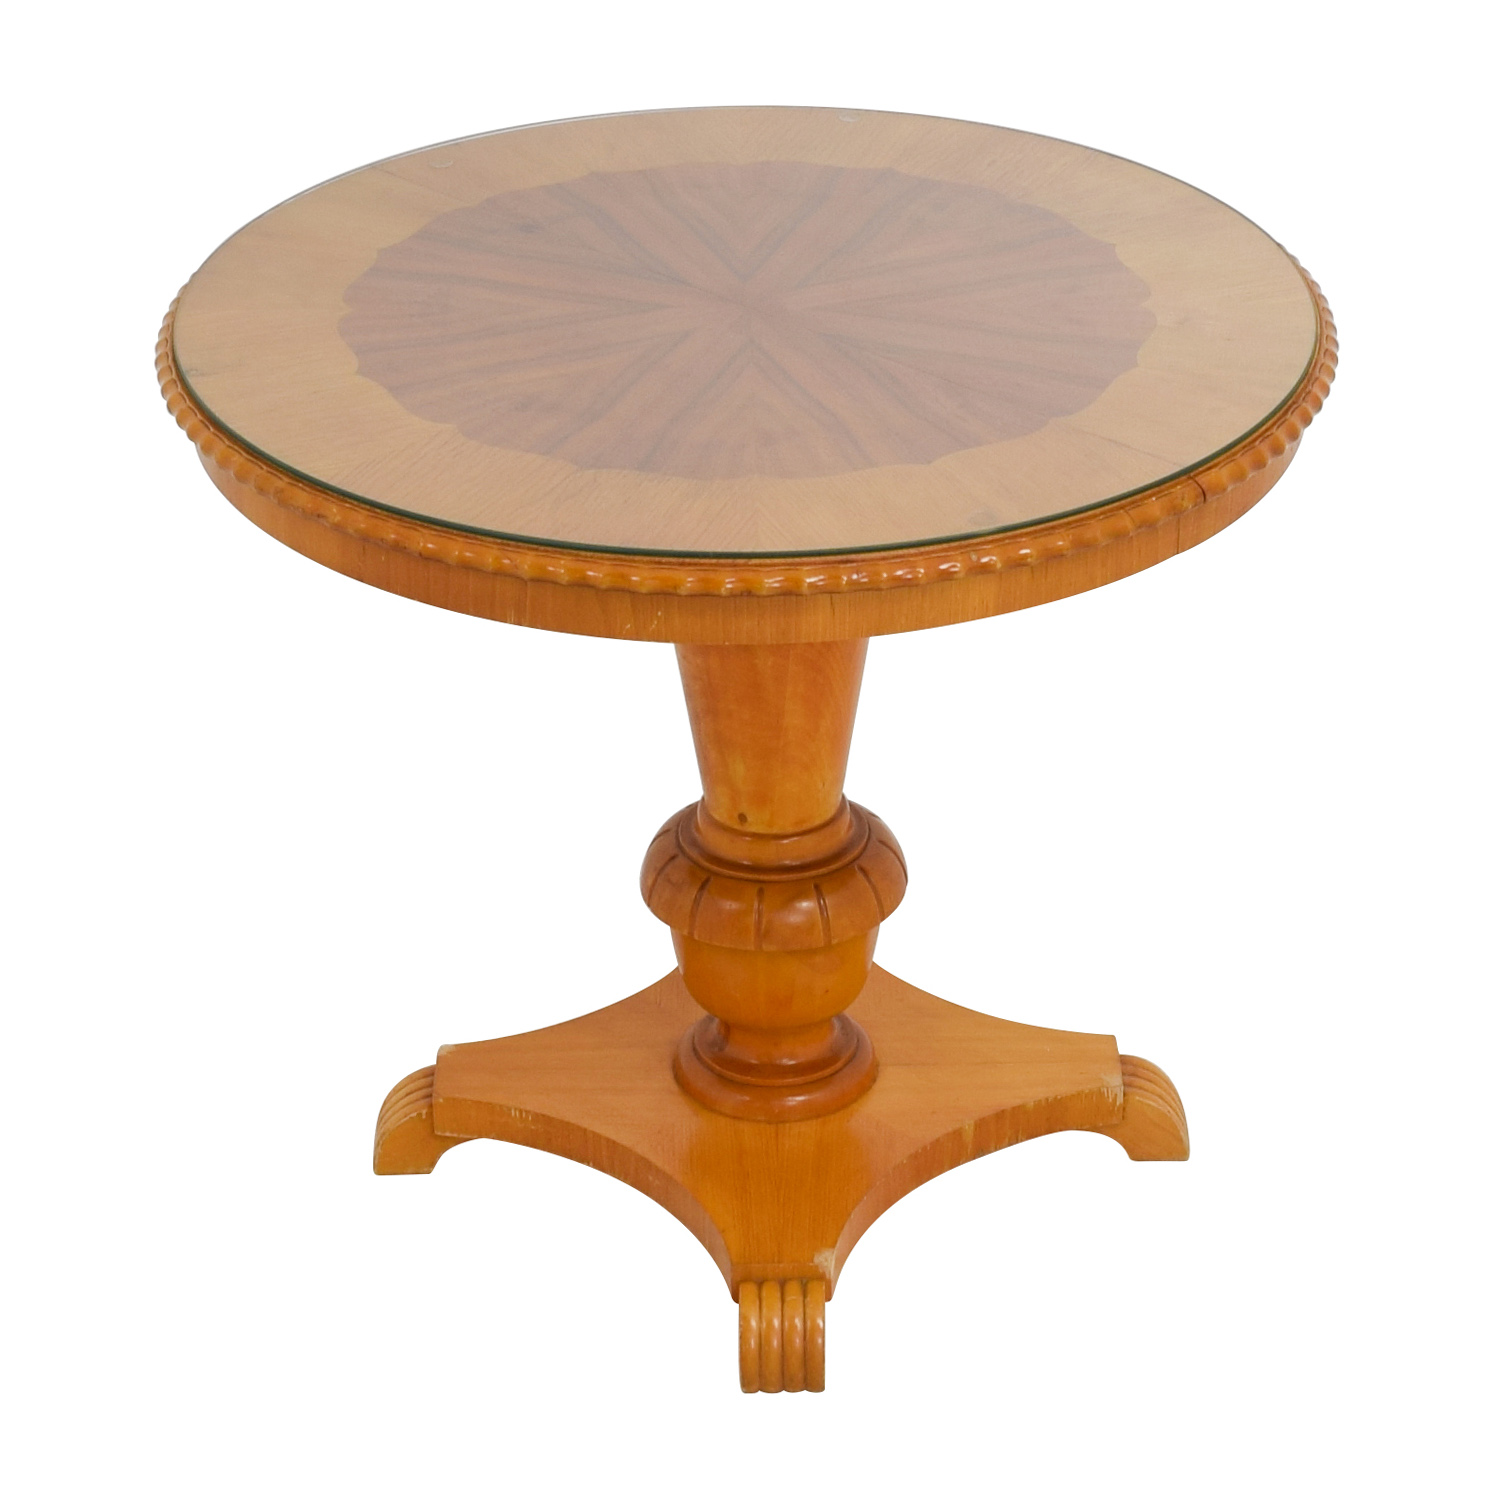 buy Antique Round Wood Dining Table with Glass Top Tables